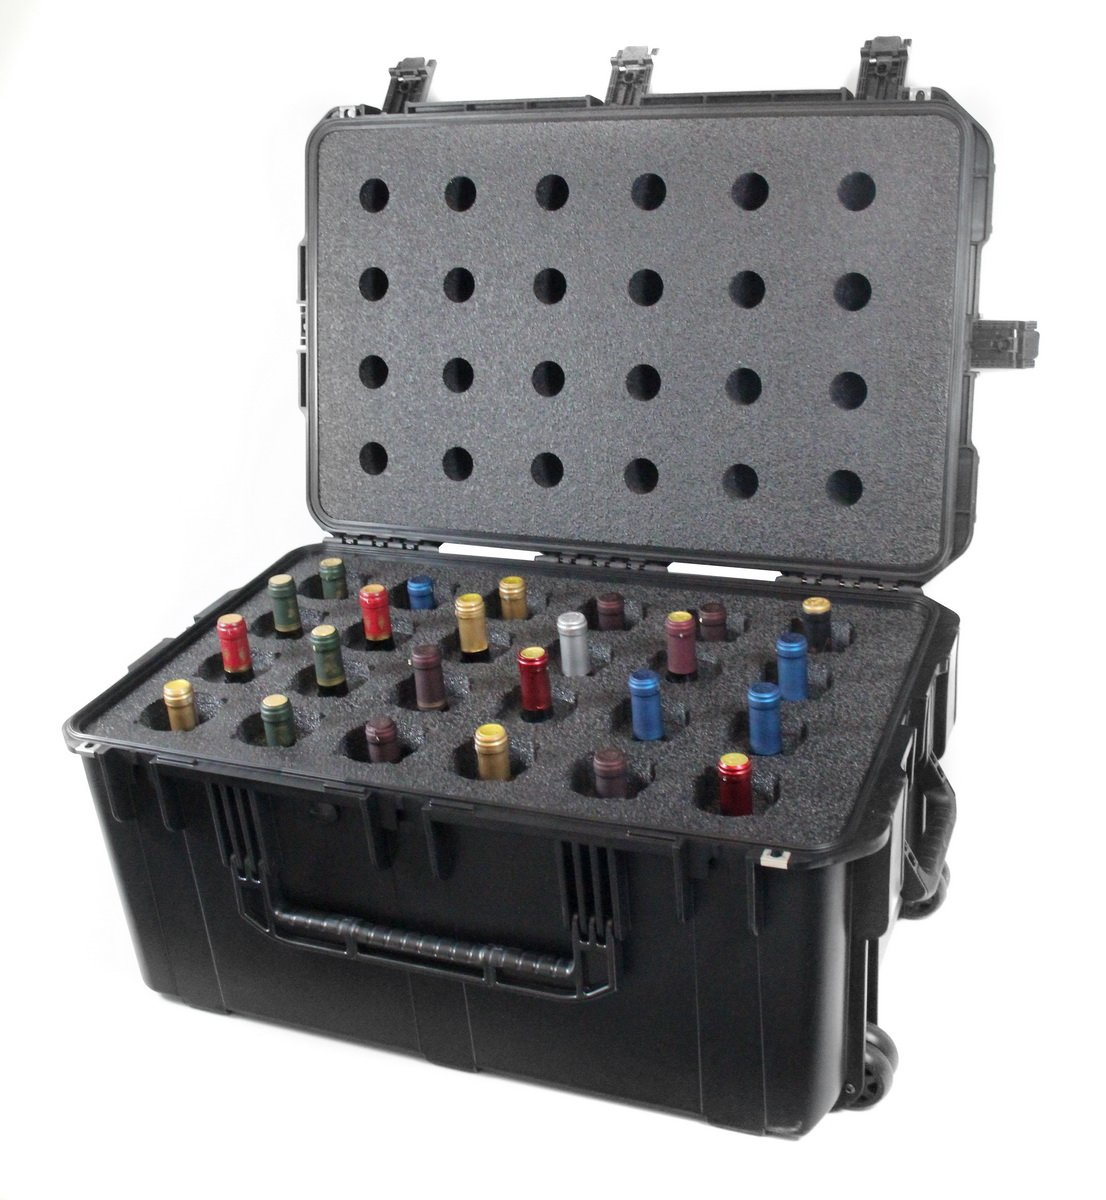 CasePro CP-WINE-24B 24-Bottle Wine Carrier with Wheels, Black by ProCase